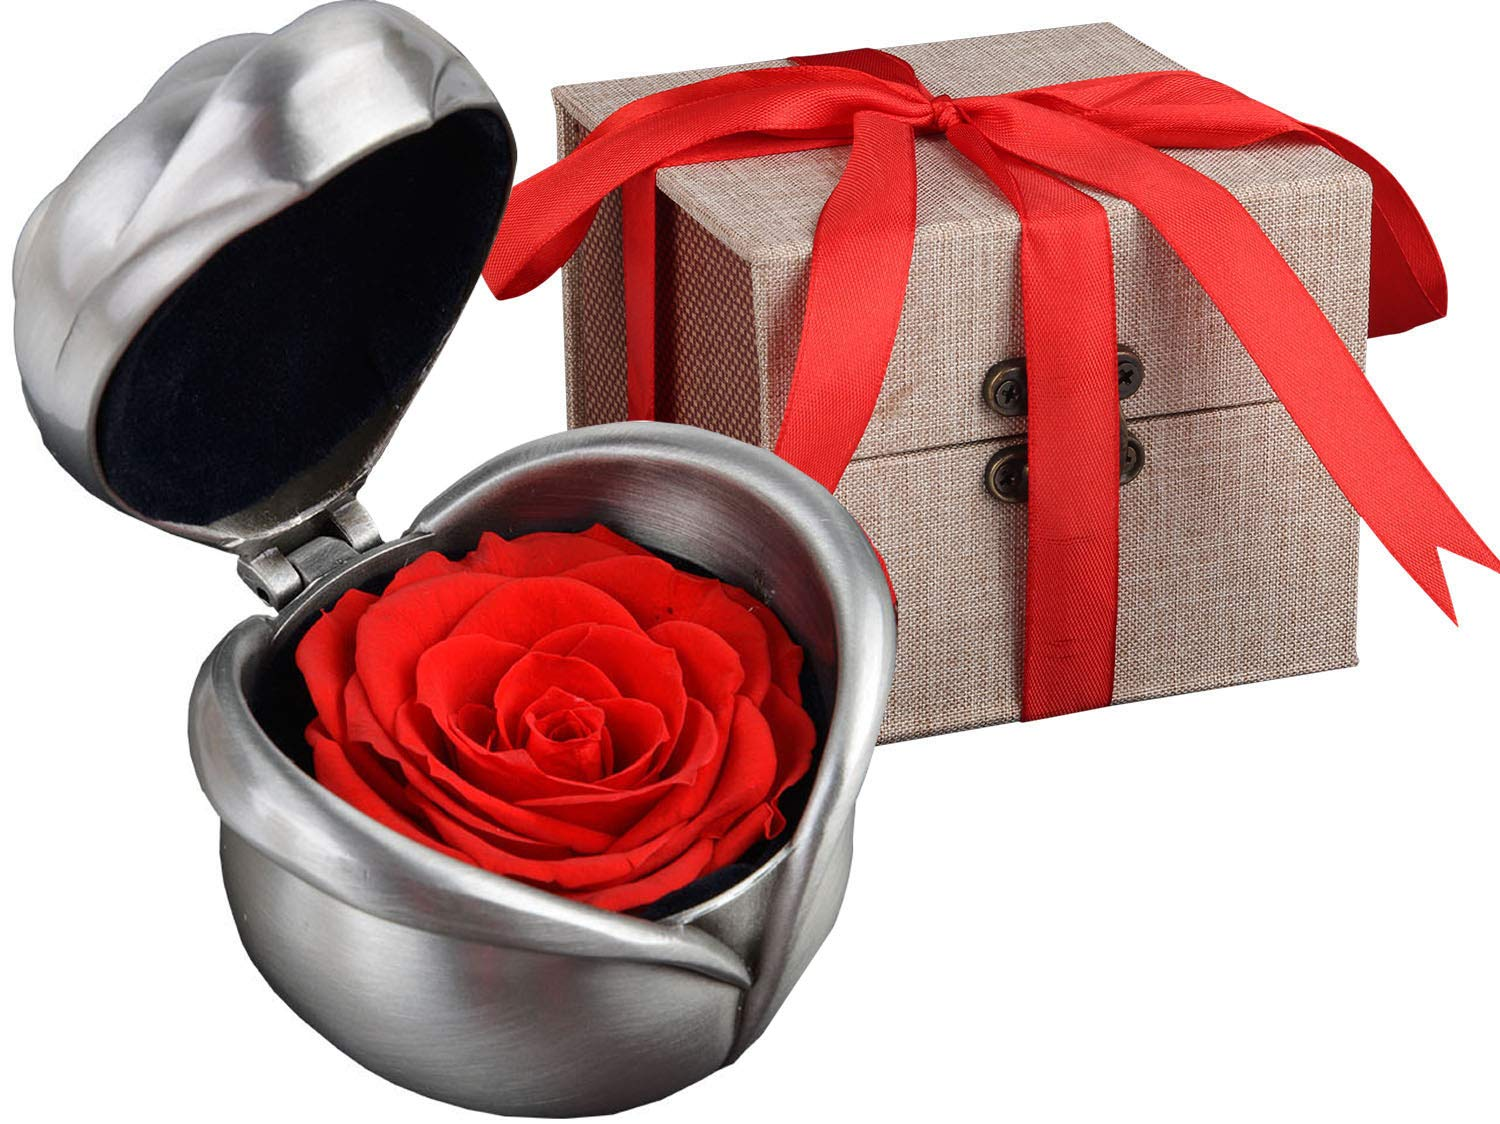 Coxeer Preserved Rose Flower, Coxeer Forever Rose Never Withered Rose, Upscale Immortal Flowers, Fresh Roses, Eernal Life Flowers Proposal Wedding Birthday Valentine's Day Gifts for Women Mom Gril Her